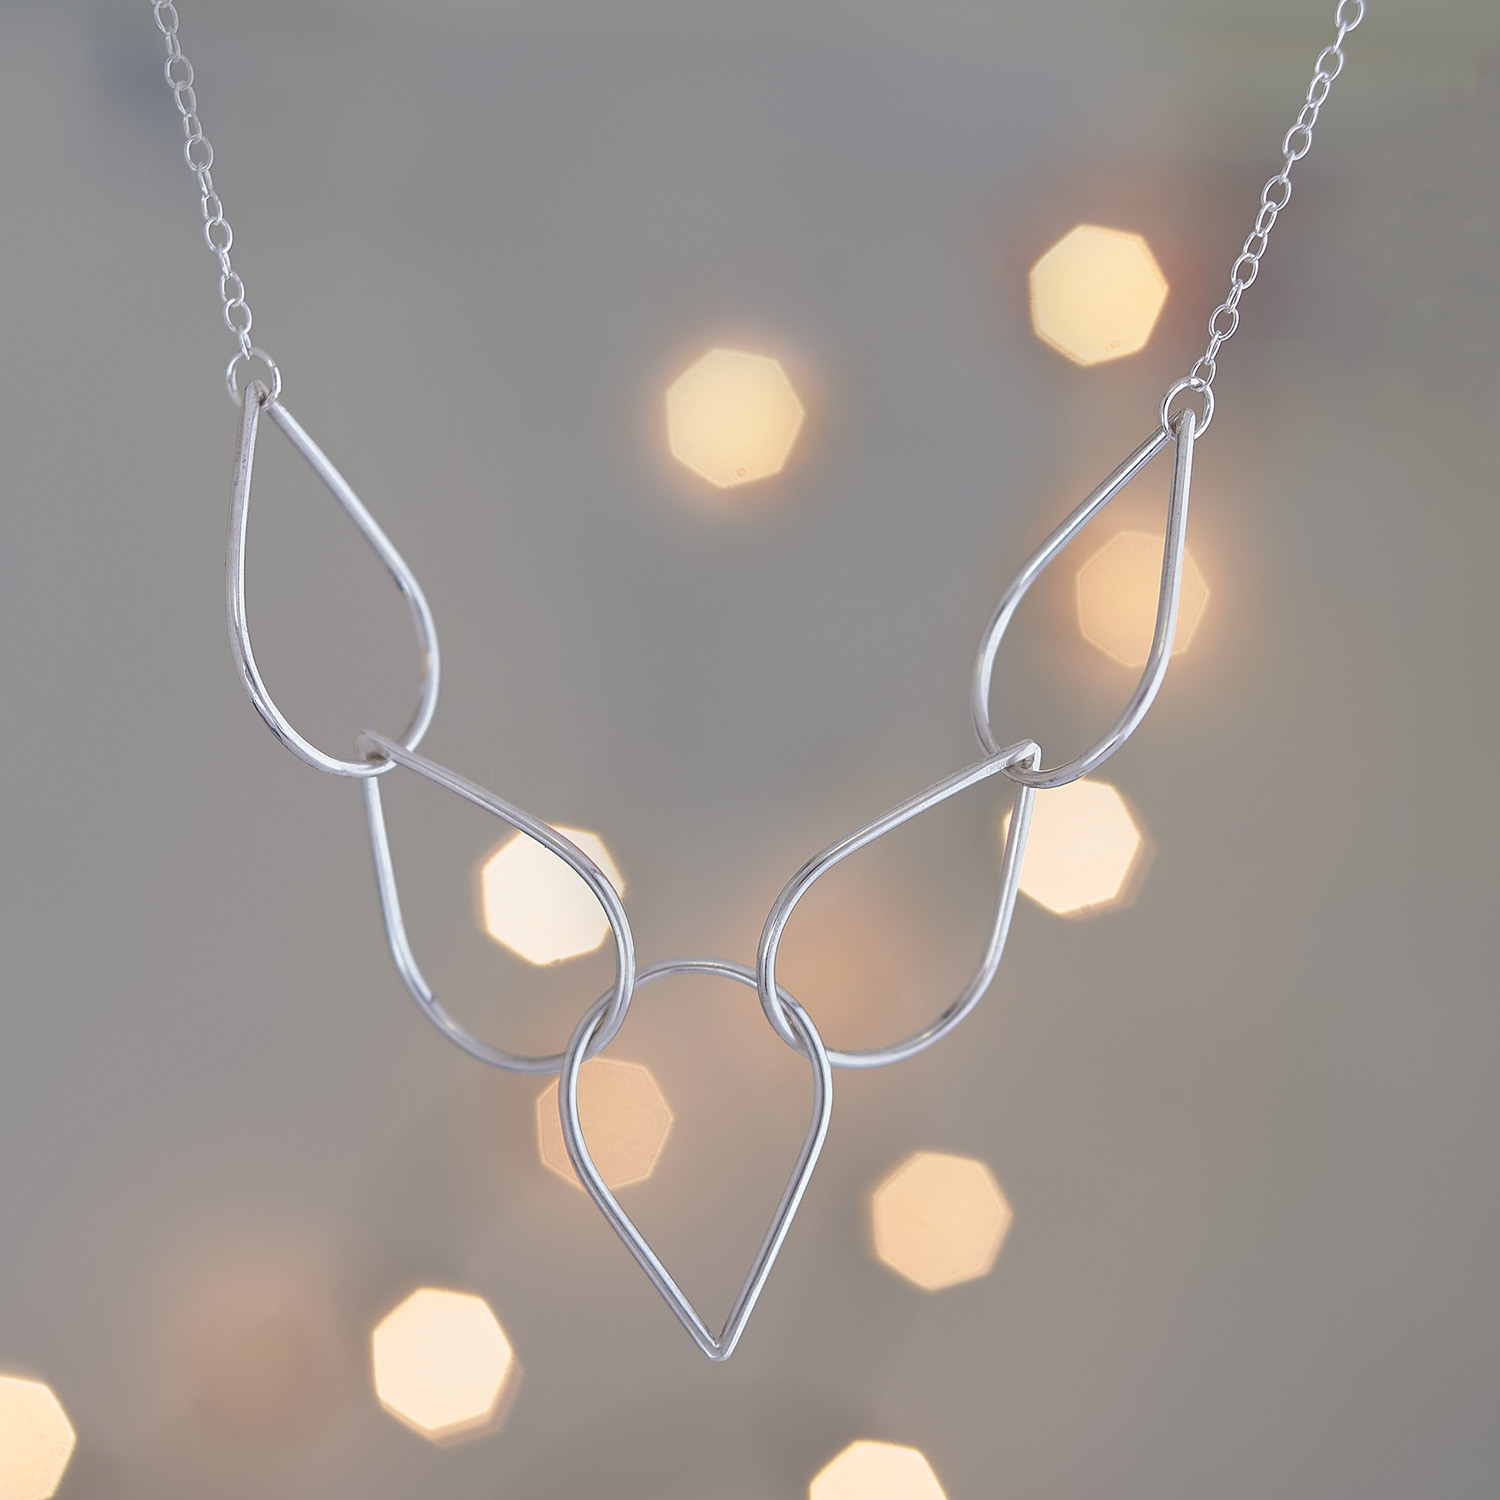 Silver necklace photograph with out of focus lights in the background